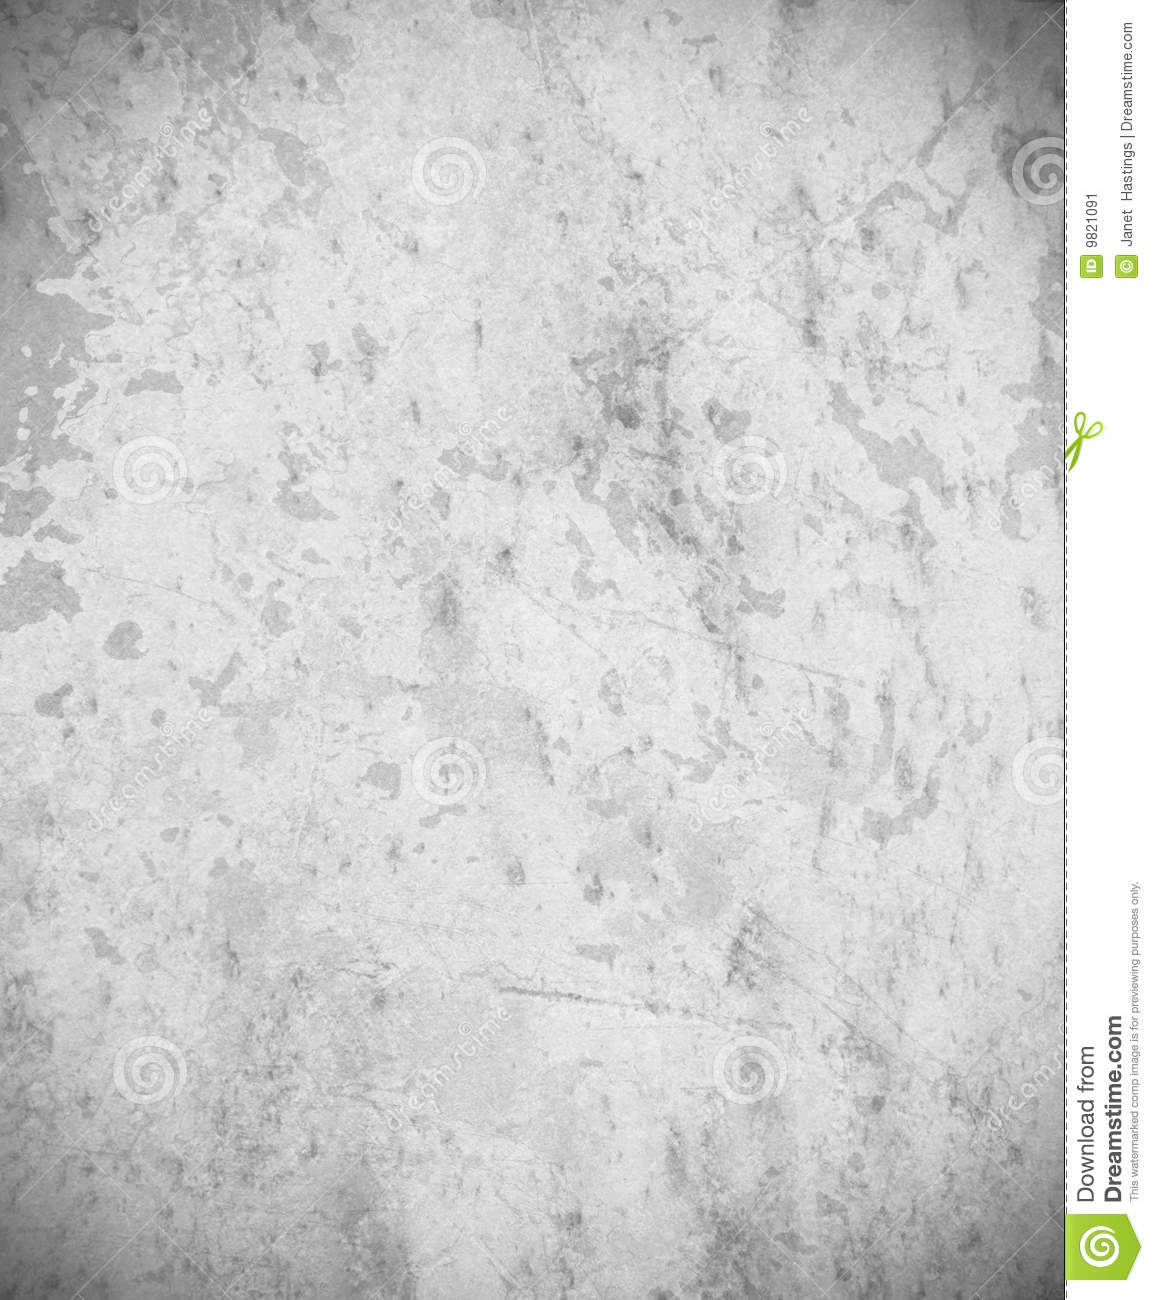 Old Car Background >> Gray Grunge Background With Copy Space Stock Image - Image: 9821091